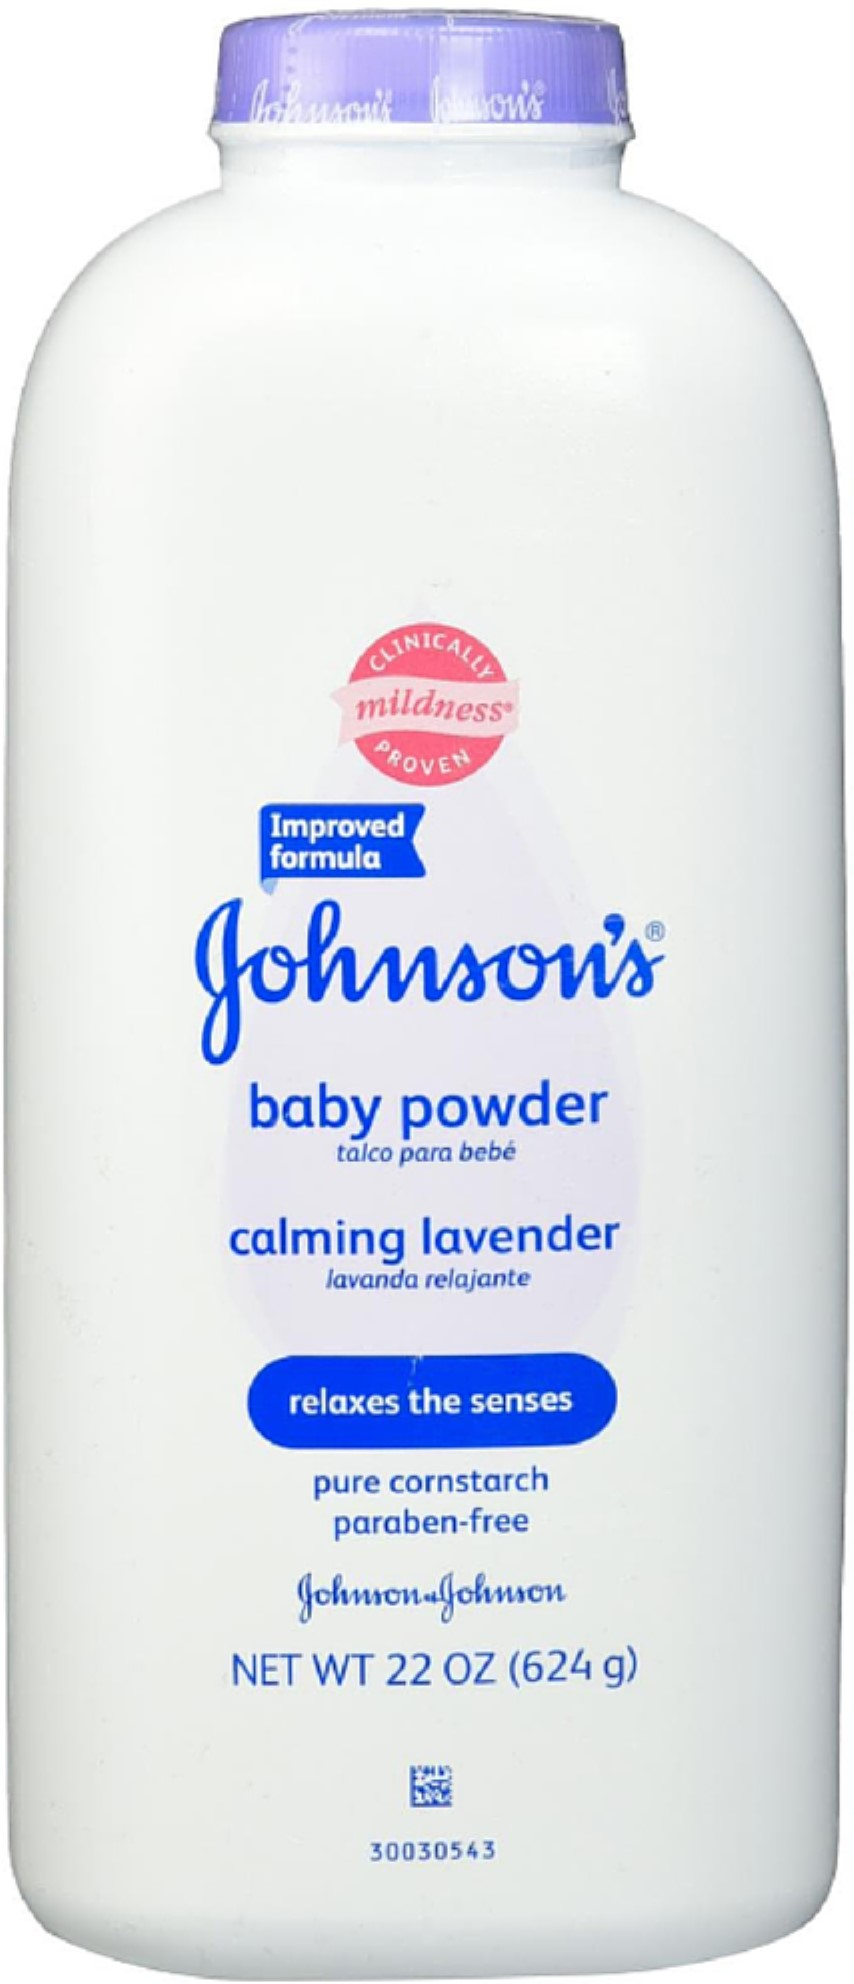 JOHNSON'S Baby Powder Calming Lavender 22 oz (Pack of 6) by